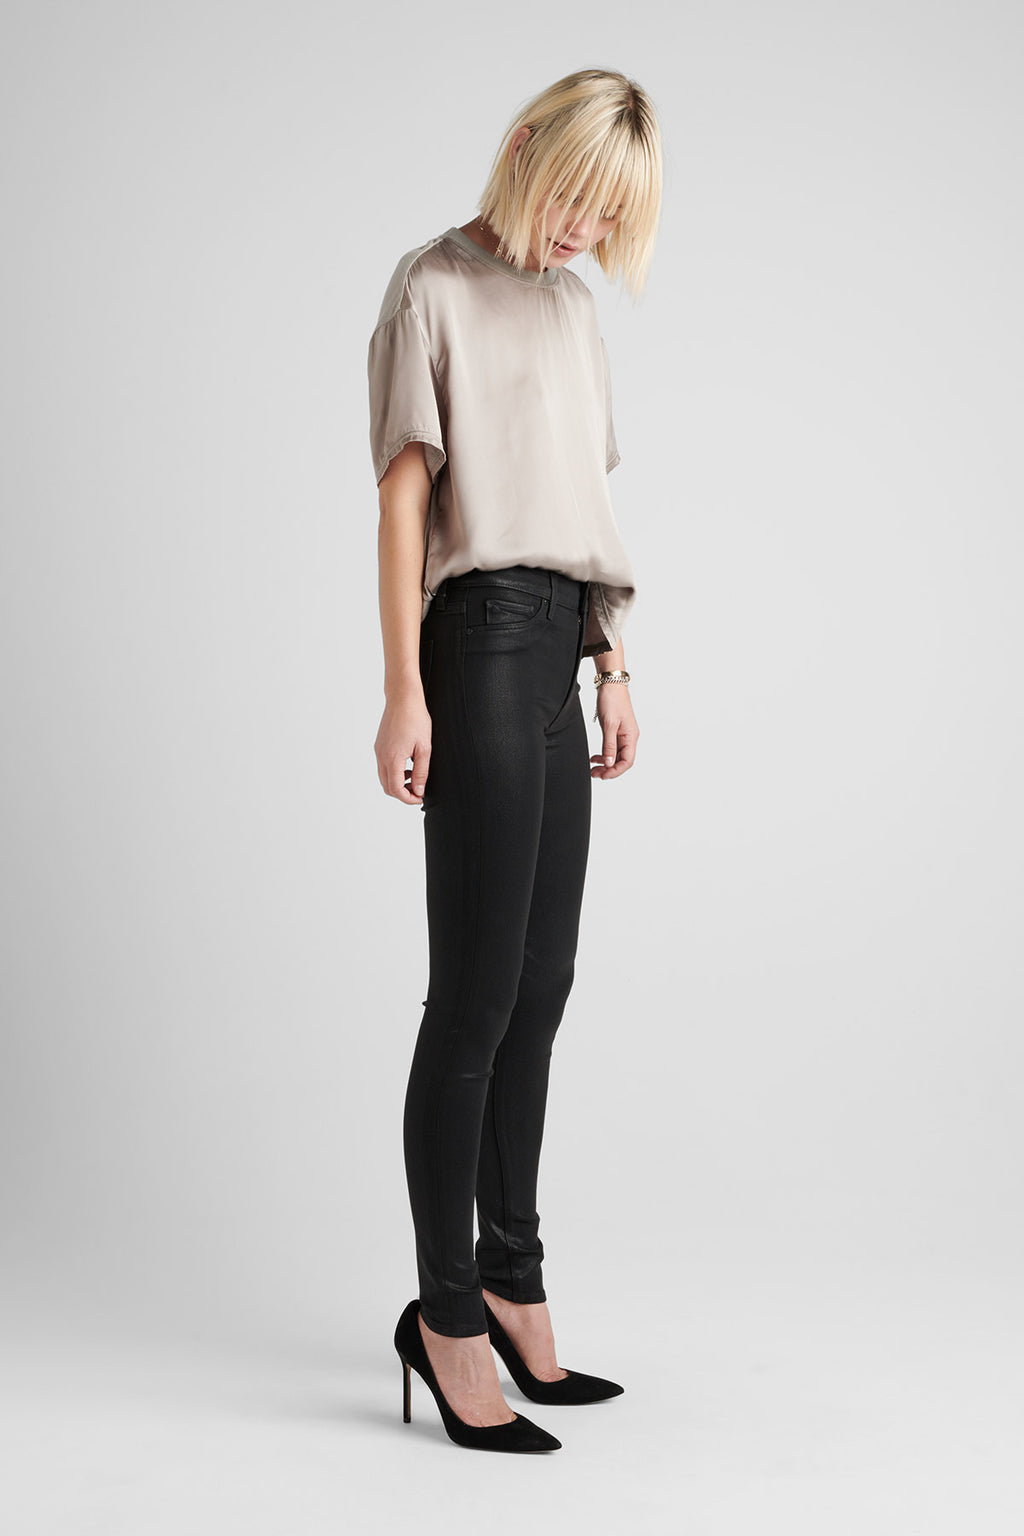 BARBARA HIGH RISE SUPER SKINNY COATED JEAN - NOIR CO 2 - Image 2